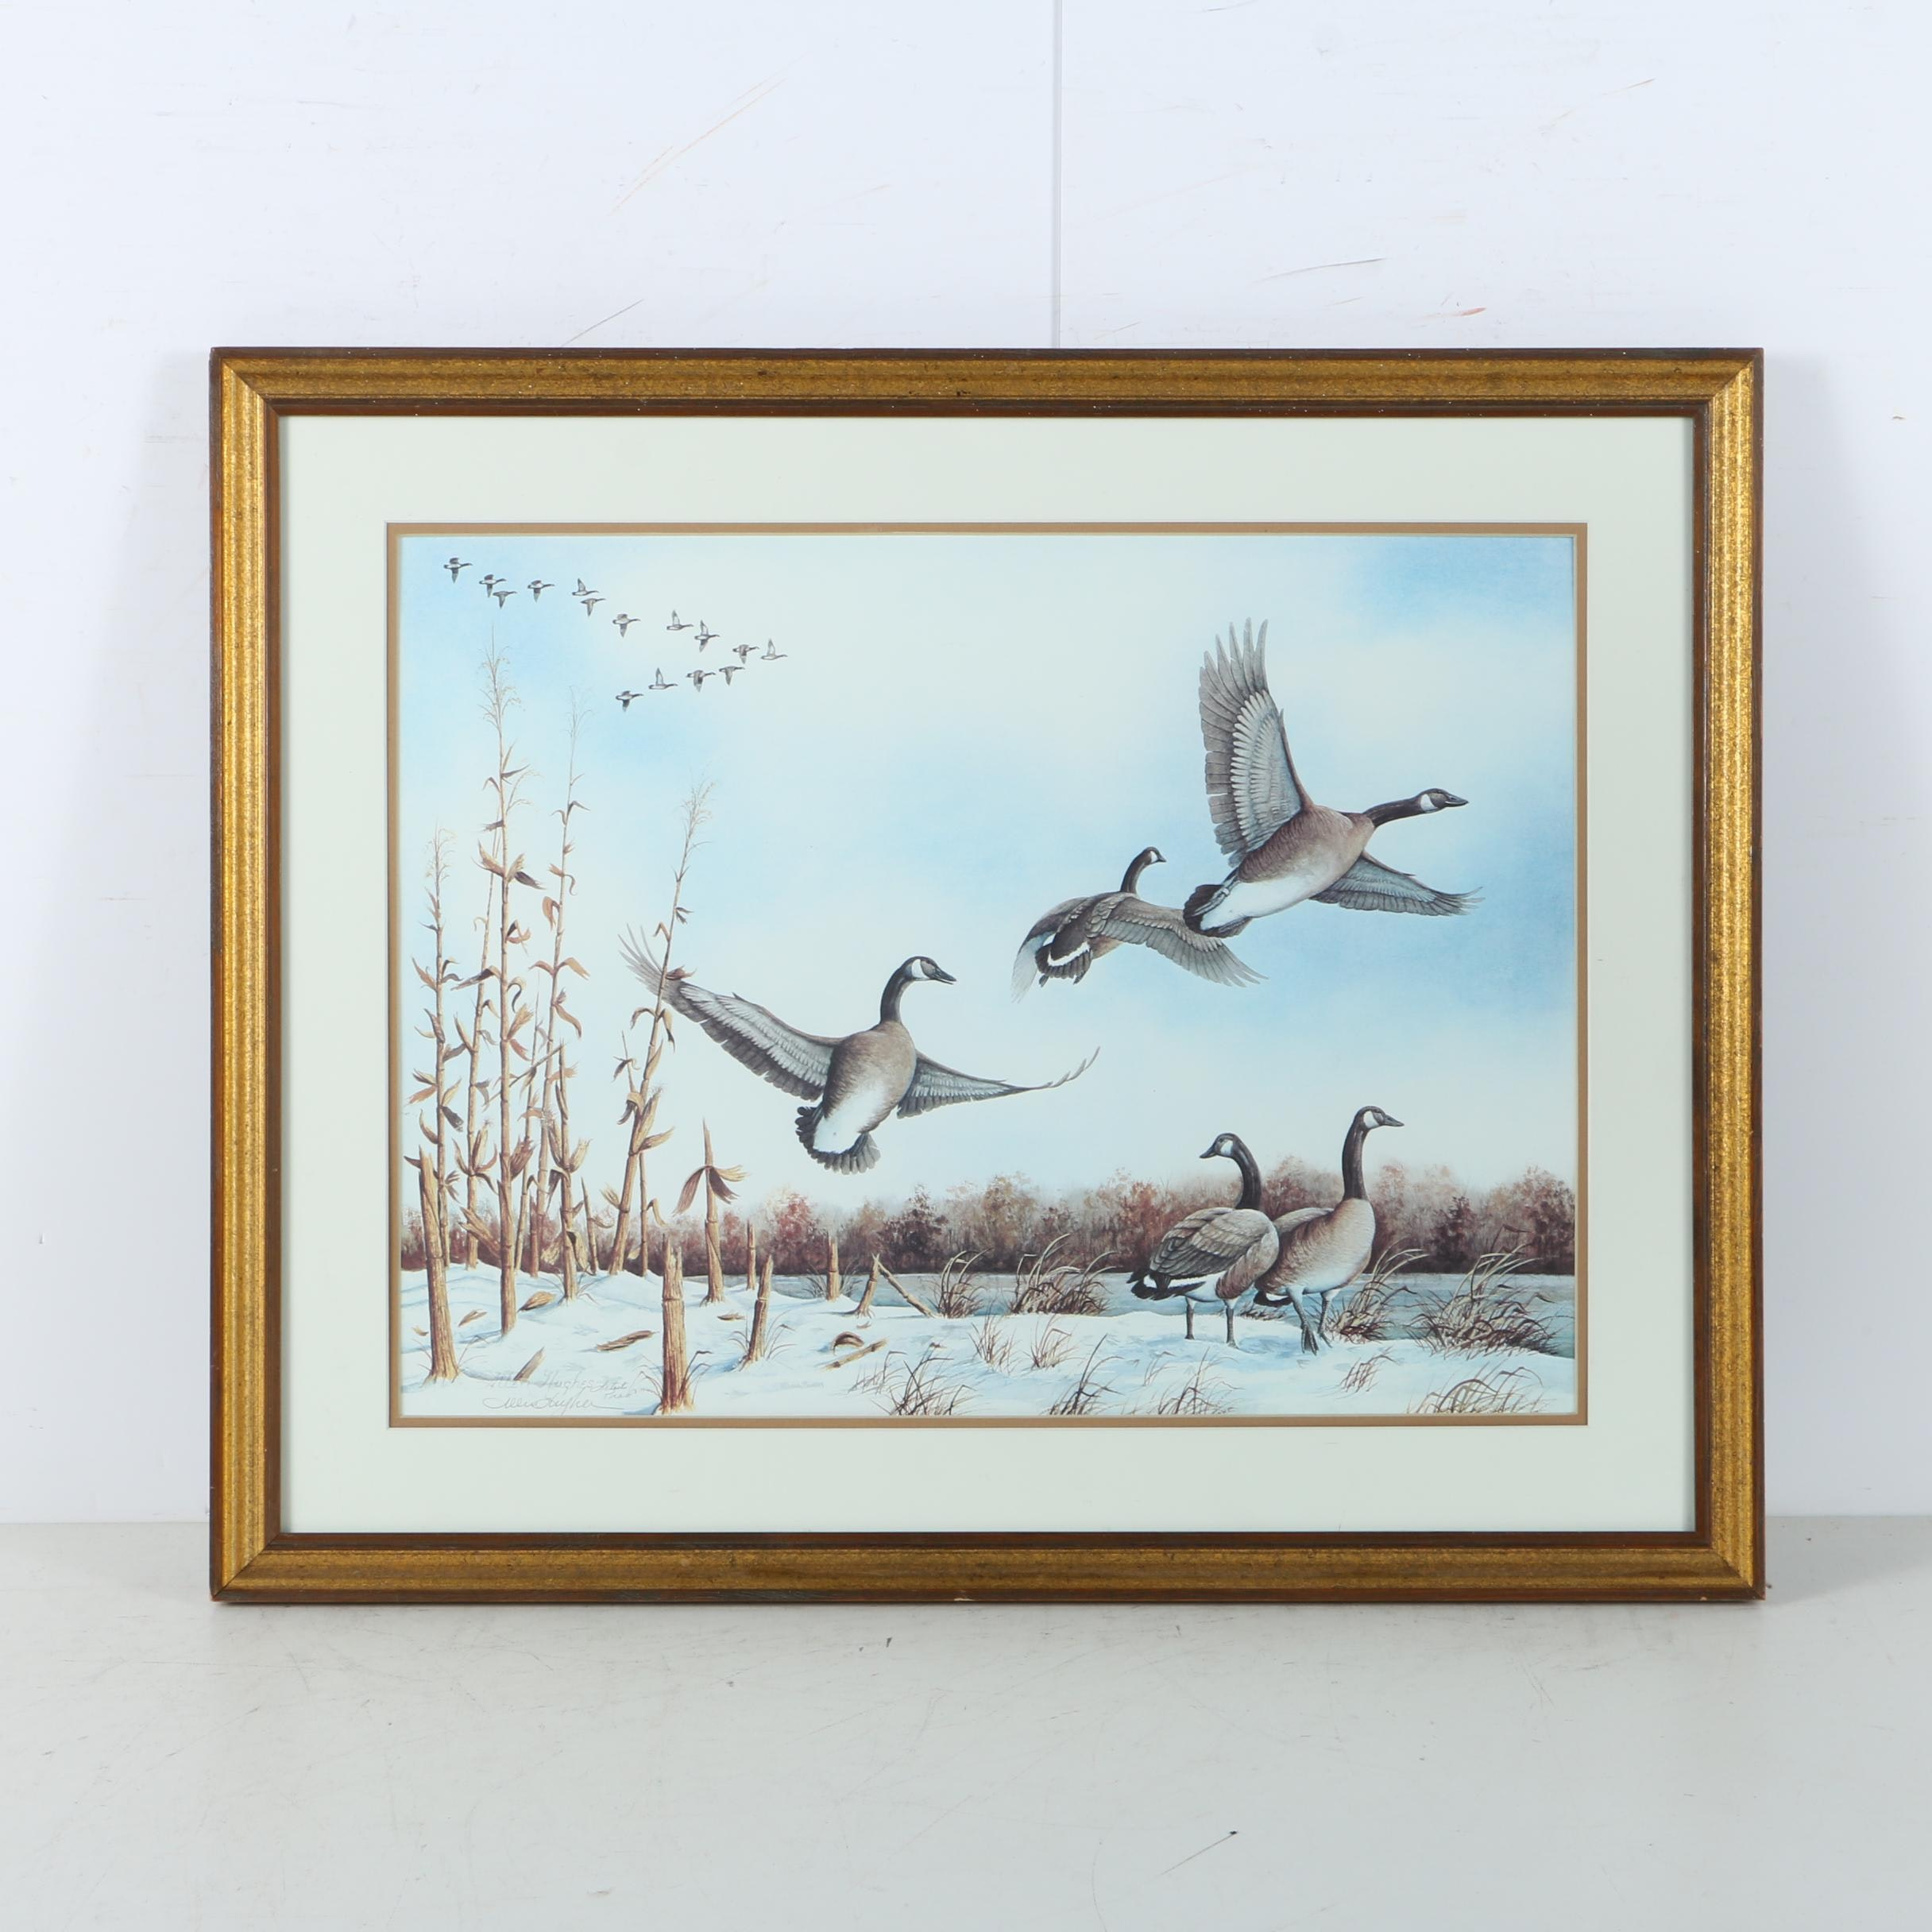 Allen Hughes Limited Edition Offset Lithograph of Geese